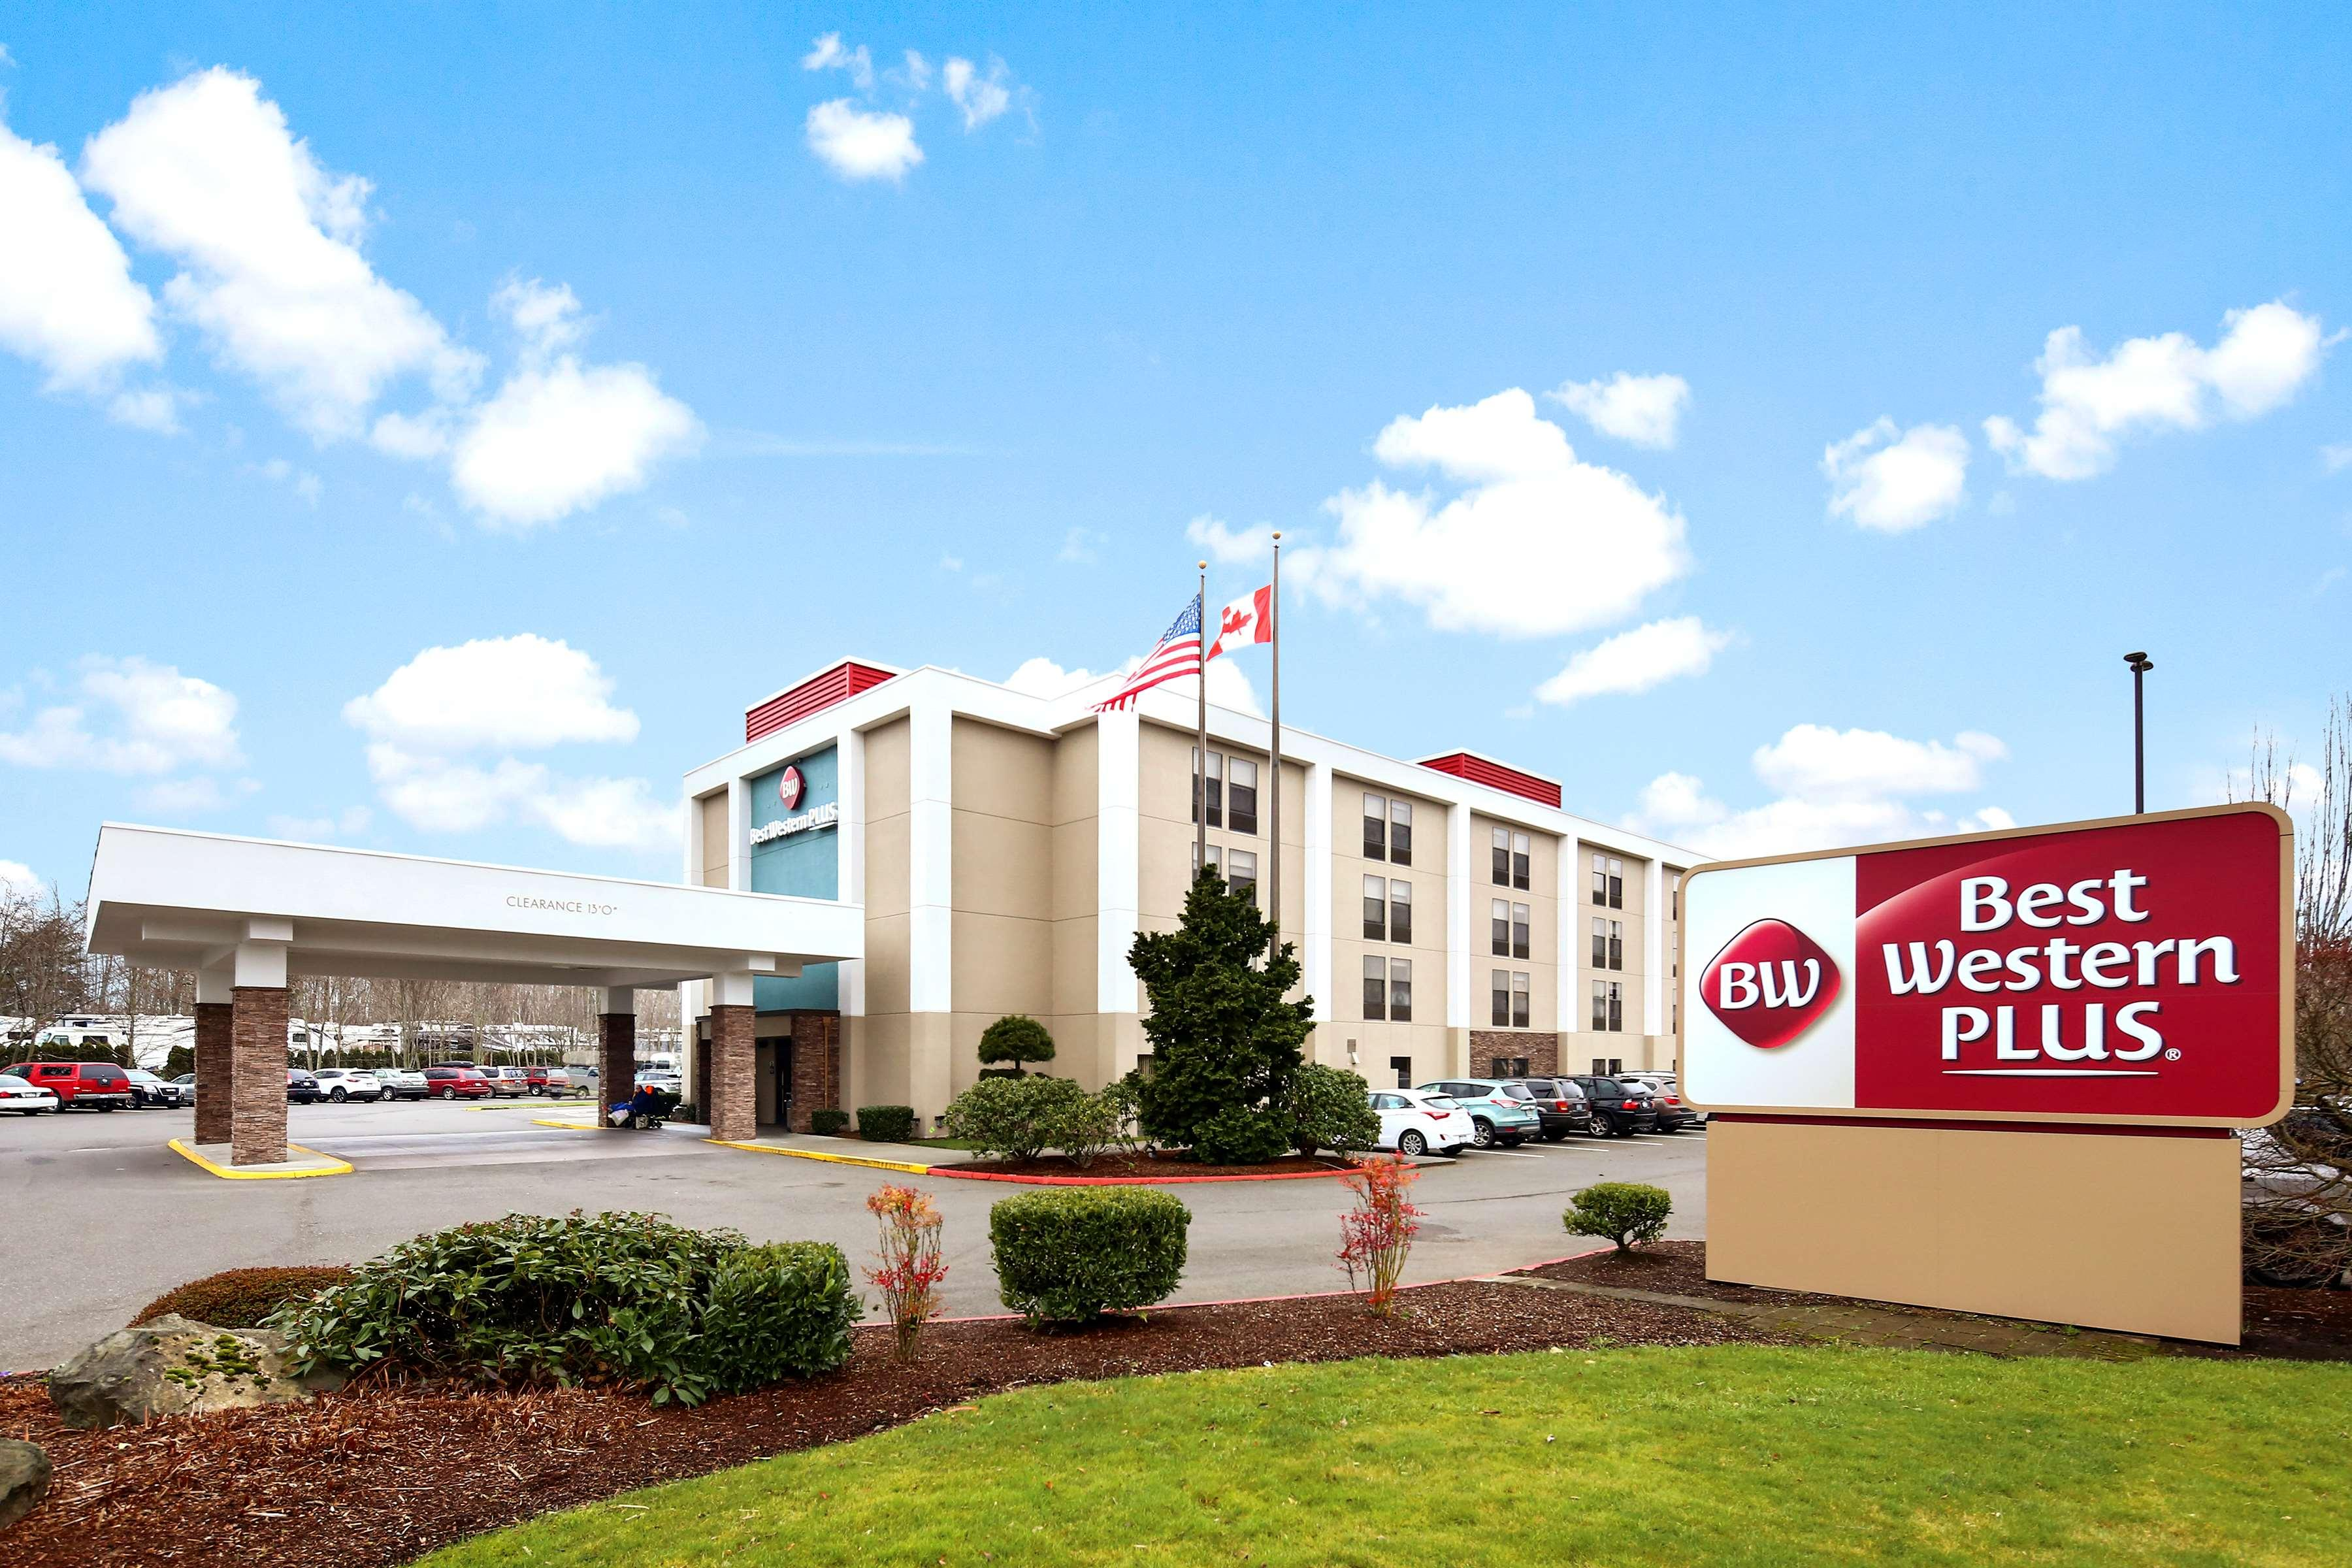 Best Western Plus Bellingham Airport Hotel, Whatcom